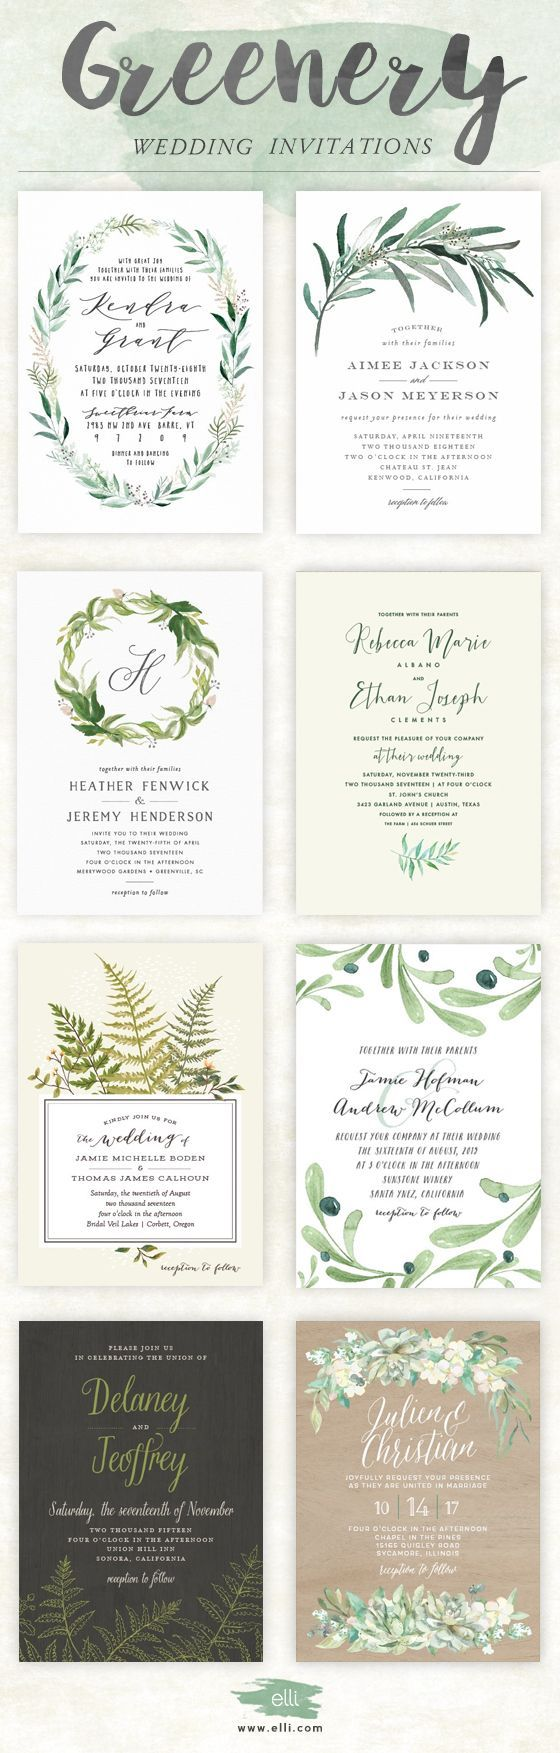 Wedding decorations at church november 2018  Free Printable Birthday Invitations Downloadable in